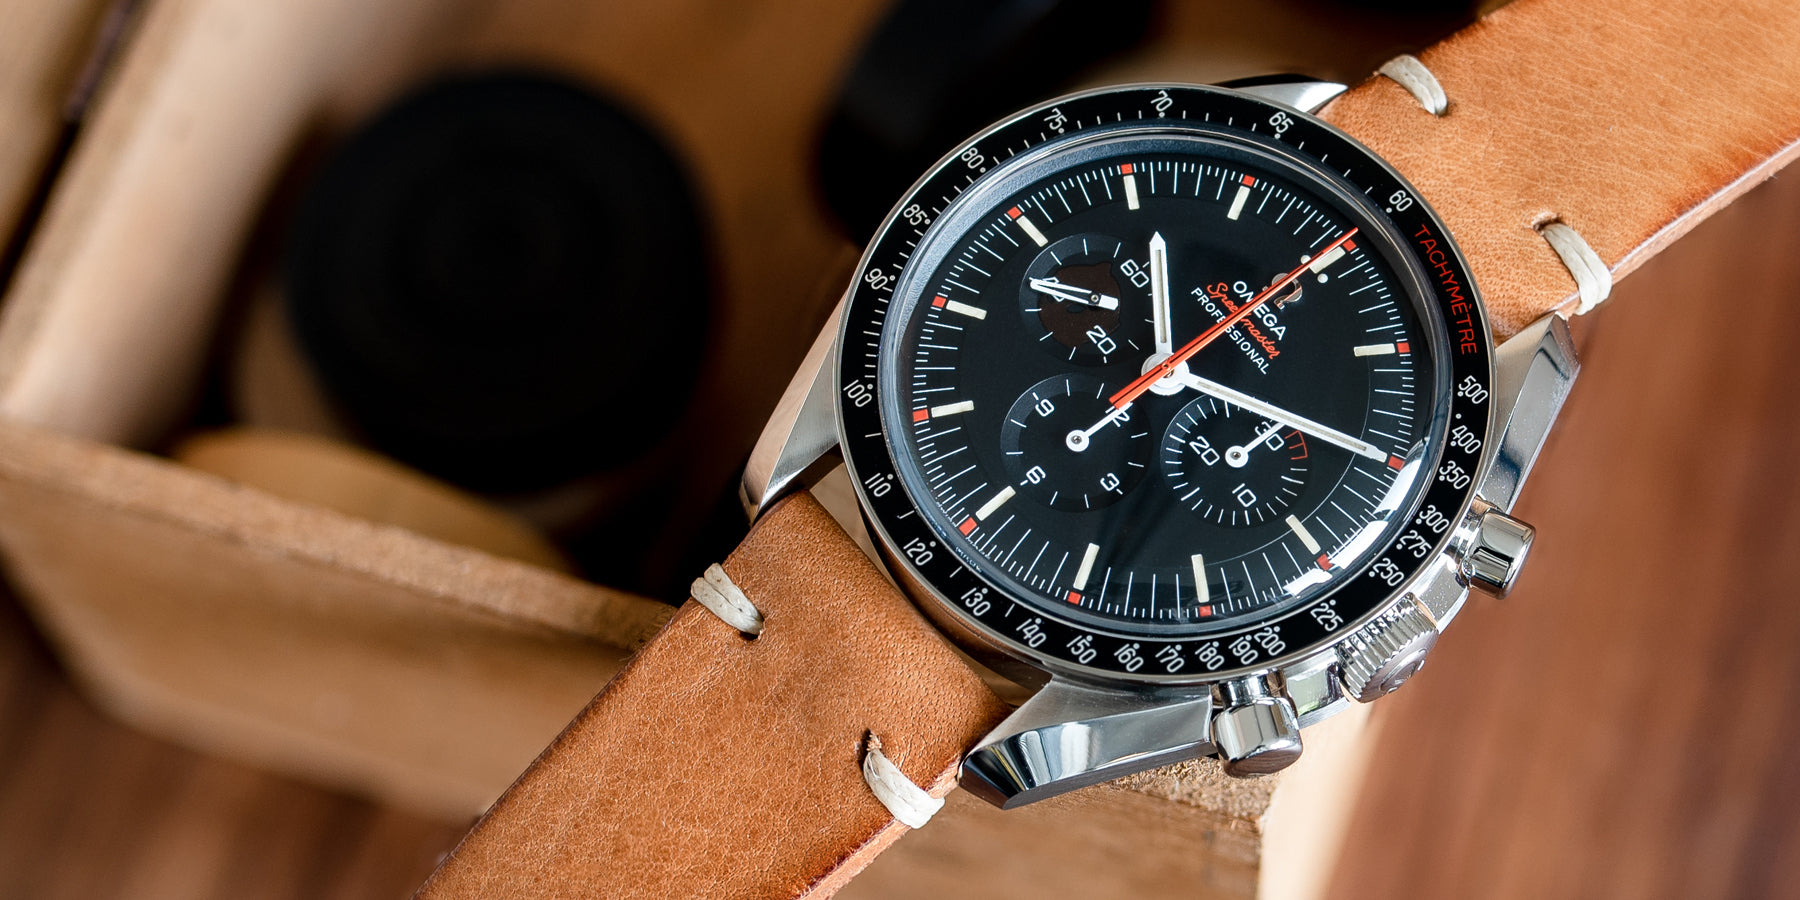 Omega Speedmaster Ultraman with 20mm lug width JPM Honey leather strap